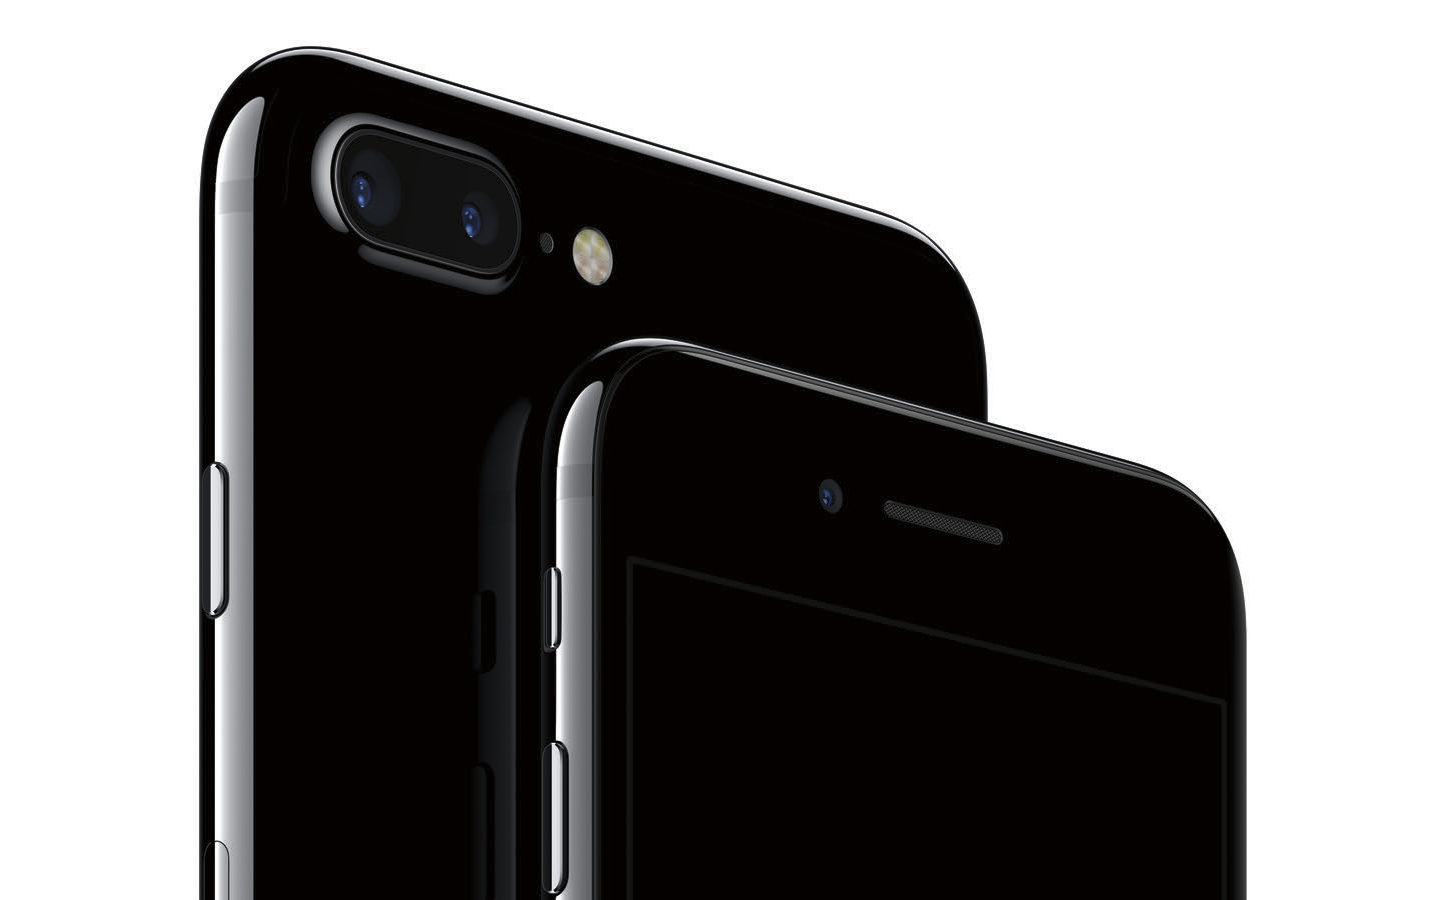 Iphone 7 jet black models